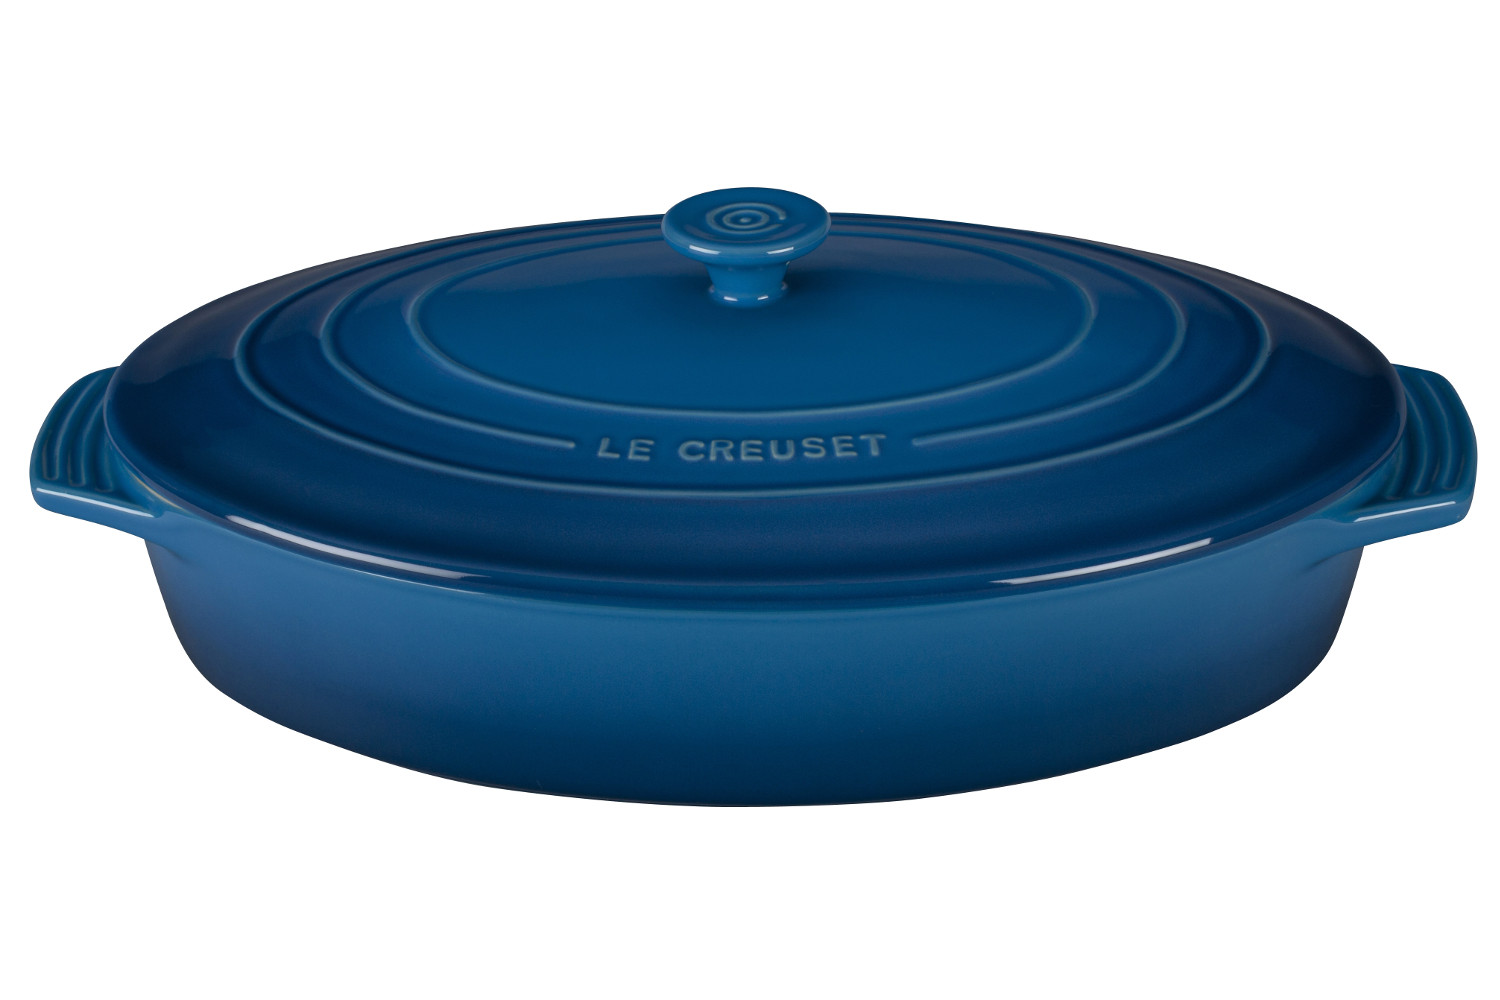 Le Creuset Stoneware 3 3/4 qt. Covered Oval Casserole - Marseille